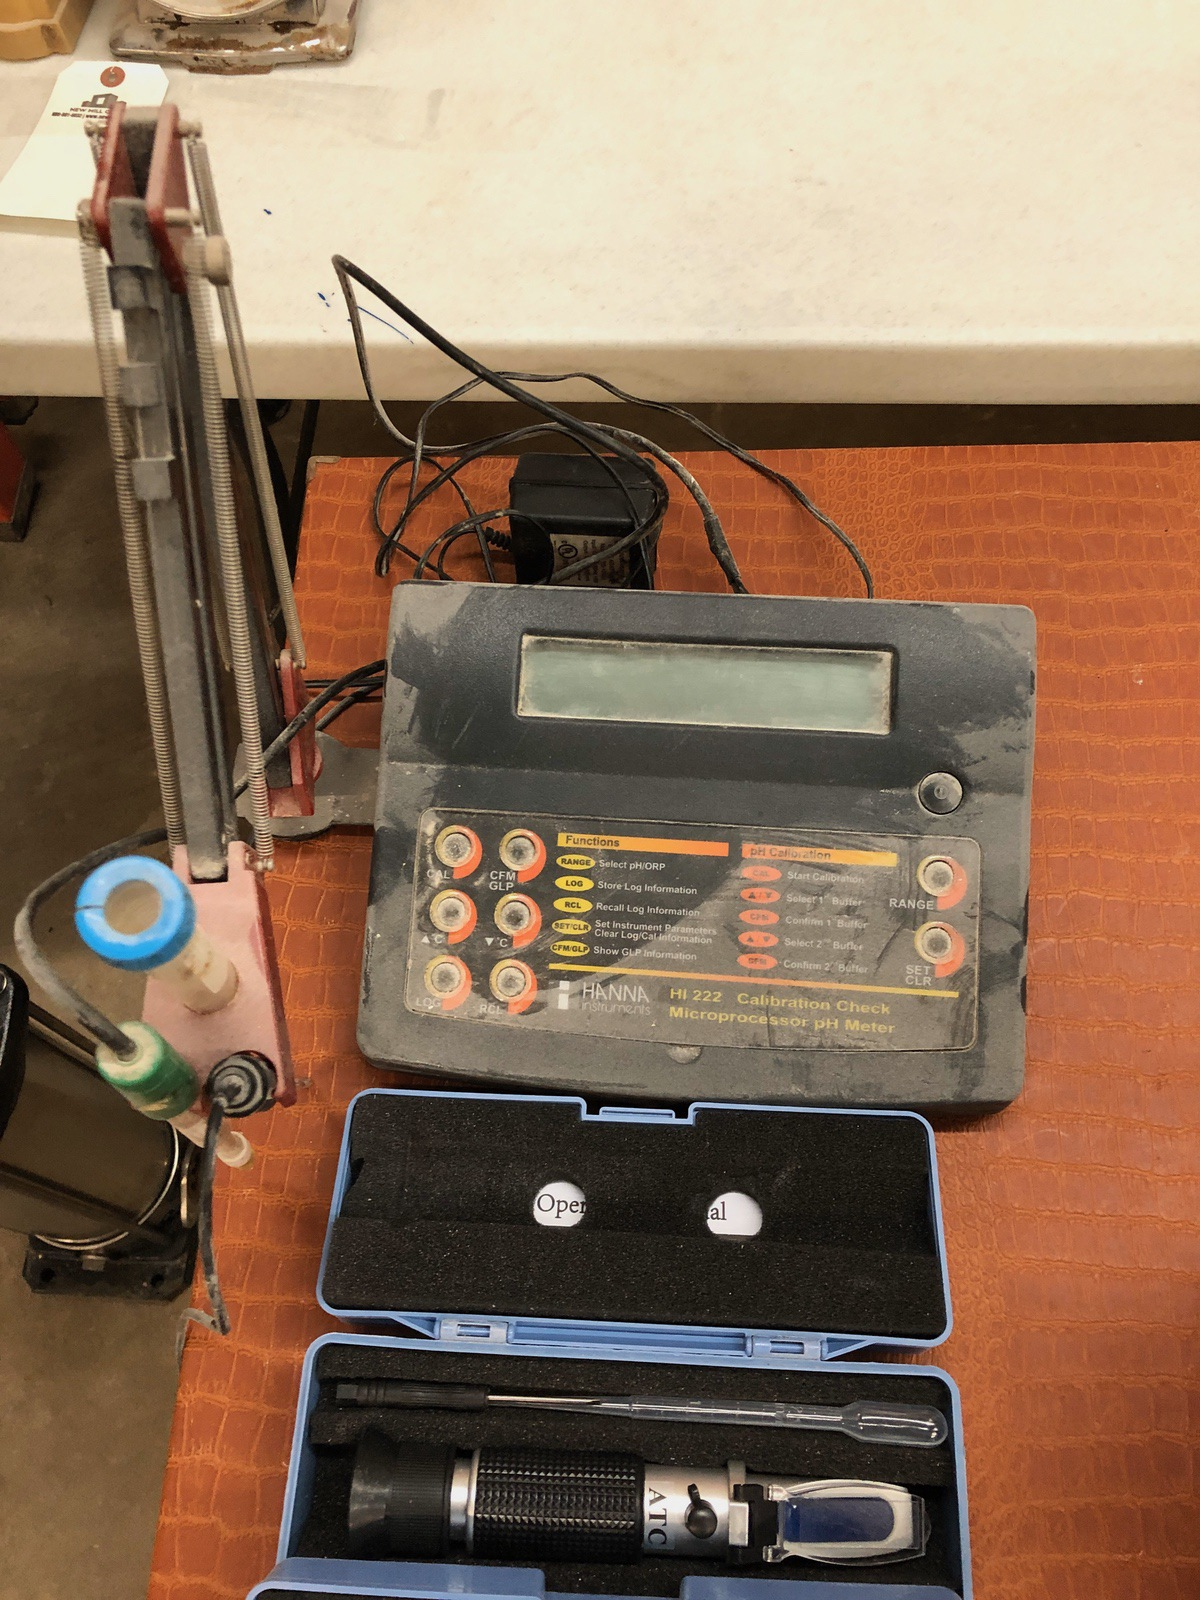 Lot 33 - Lot of Test Instruments, (2) PH Meter, (2) ATC Portable Refractom | Sub to Bulk | Rig Fee: $30 or HC